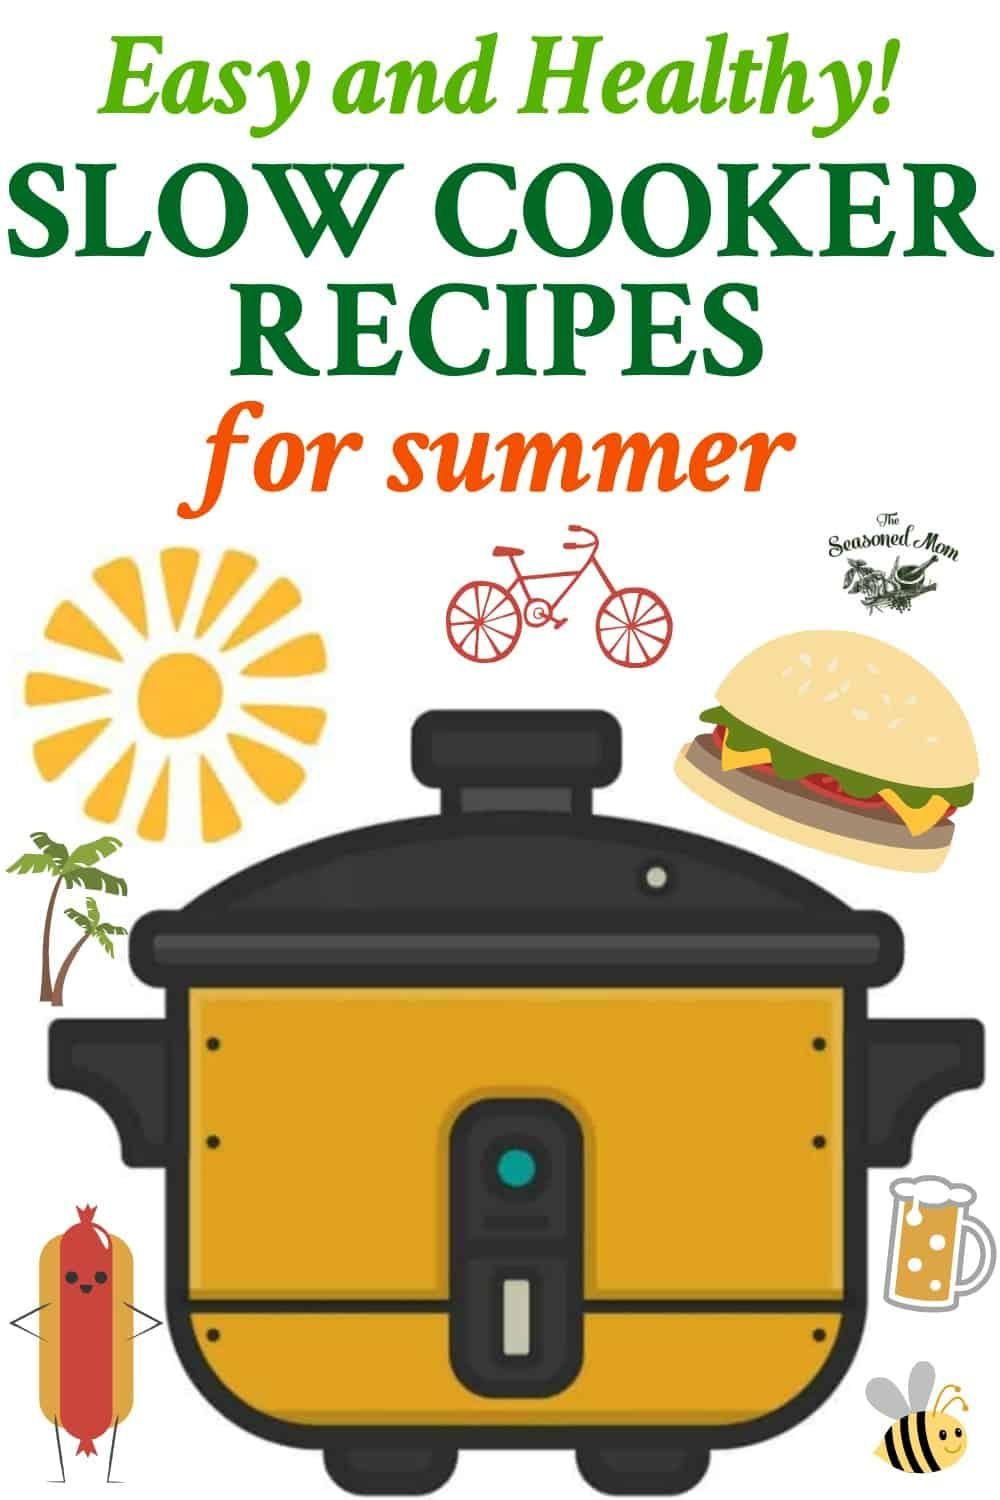 Easy Healthy Slow Cooker Recipes for Summer! images